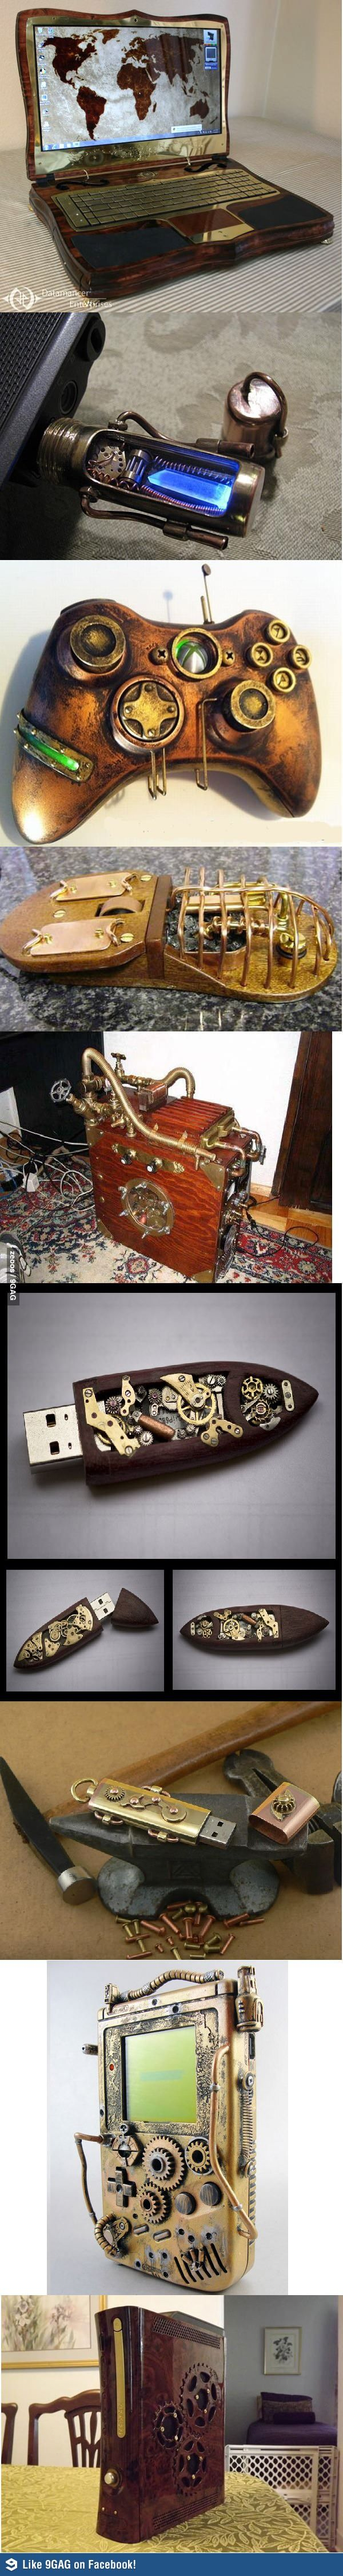 Steampunk gadgets. Love the laptop.